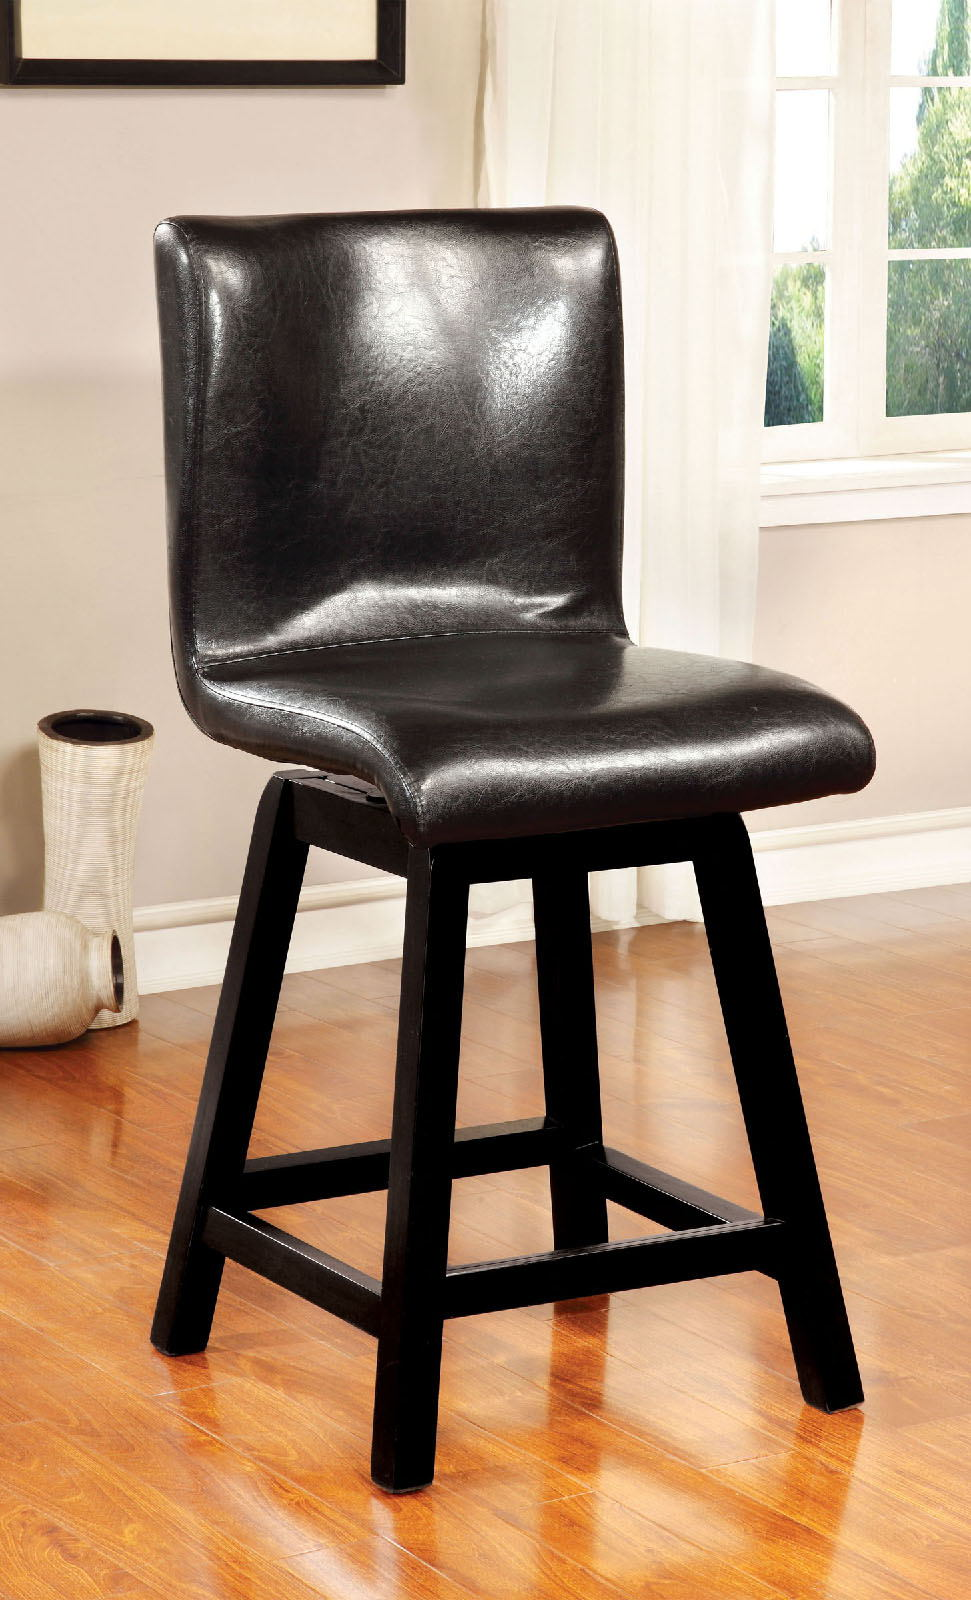 Set of 2 hurley collection modern style black finish wood dining counter height chairs with upholstered seat